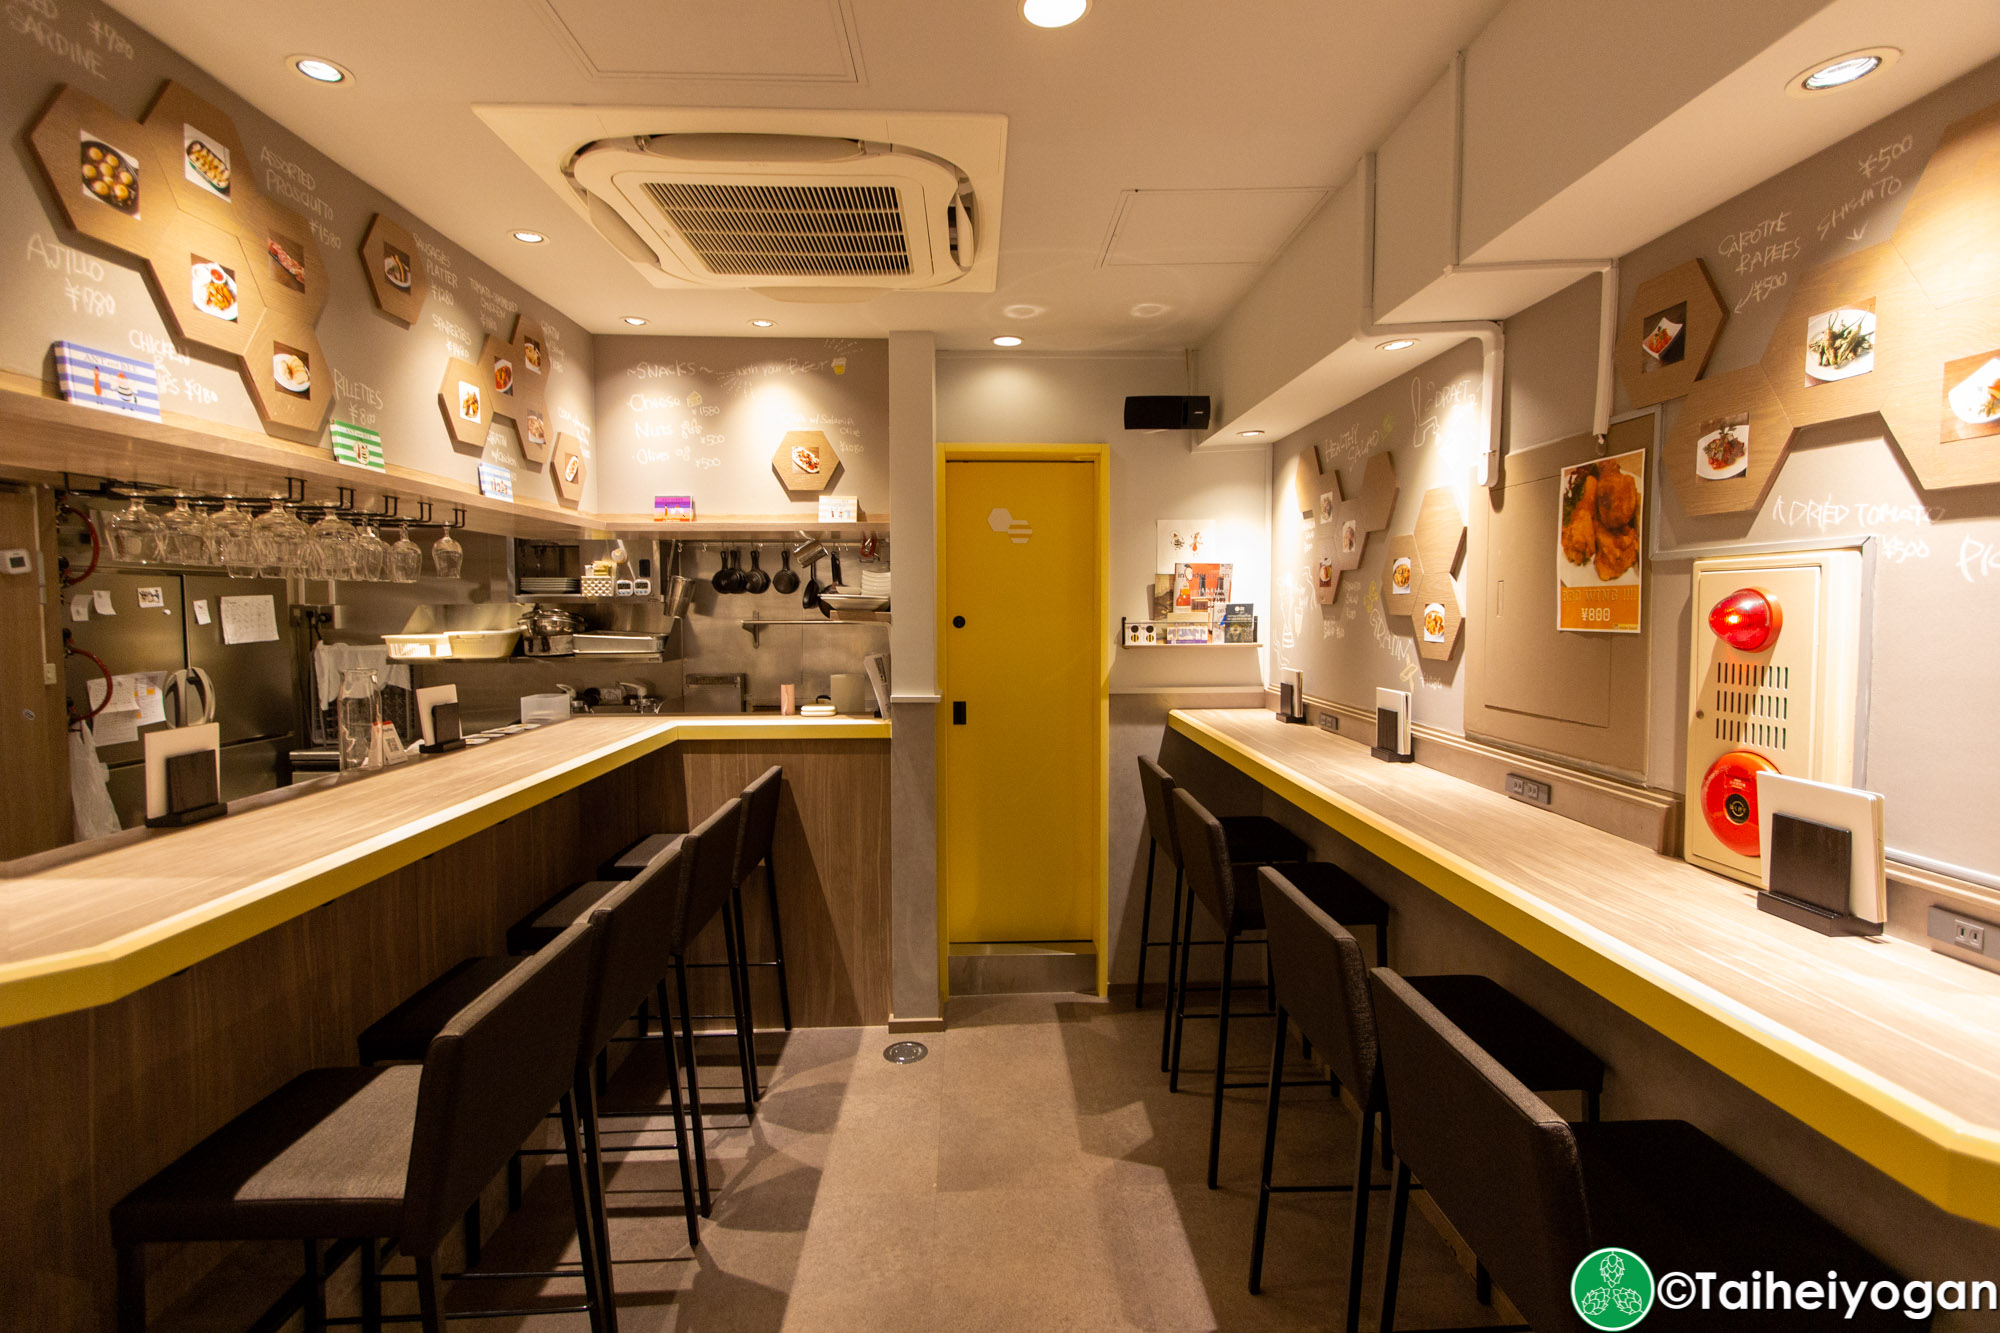 Ant 'n Bee (龍土町店・Ryudocho) - Interior - Bar Counter Seating